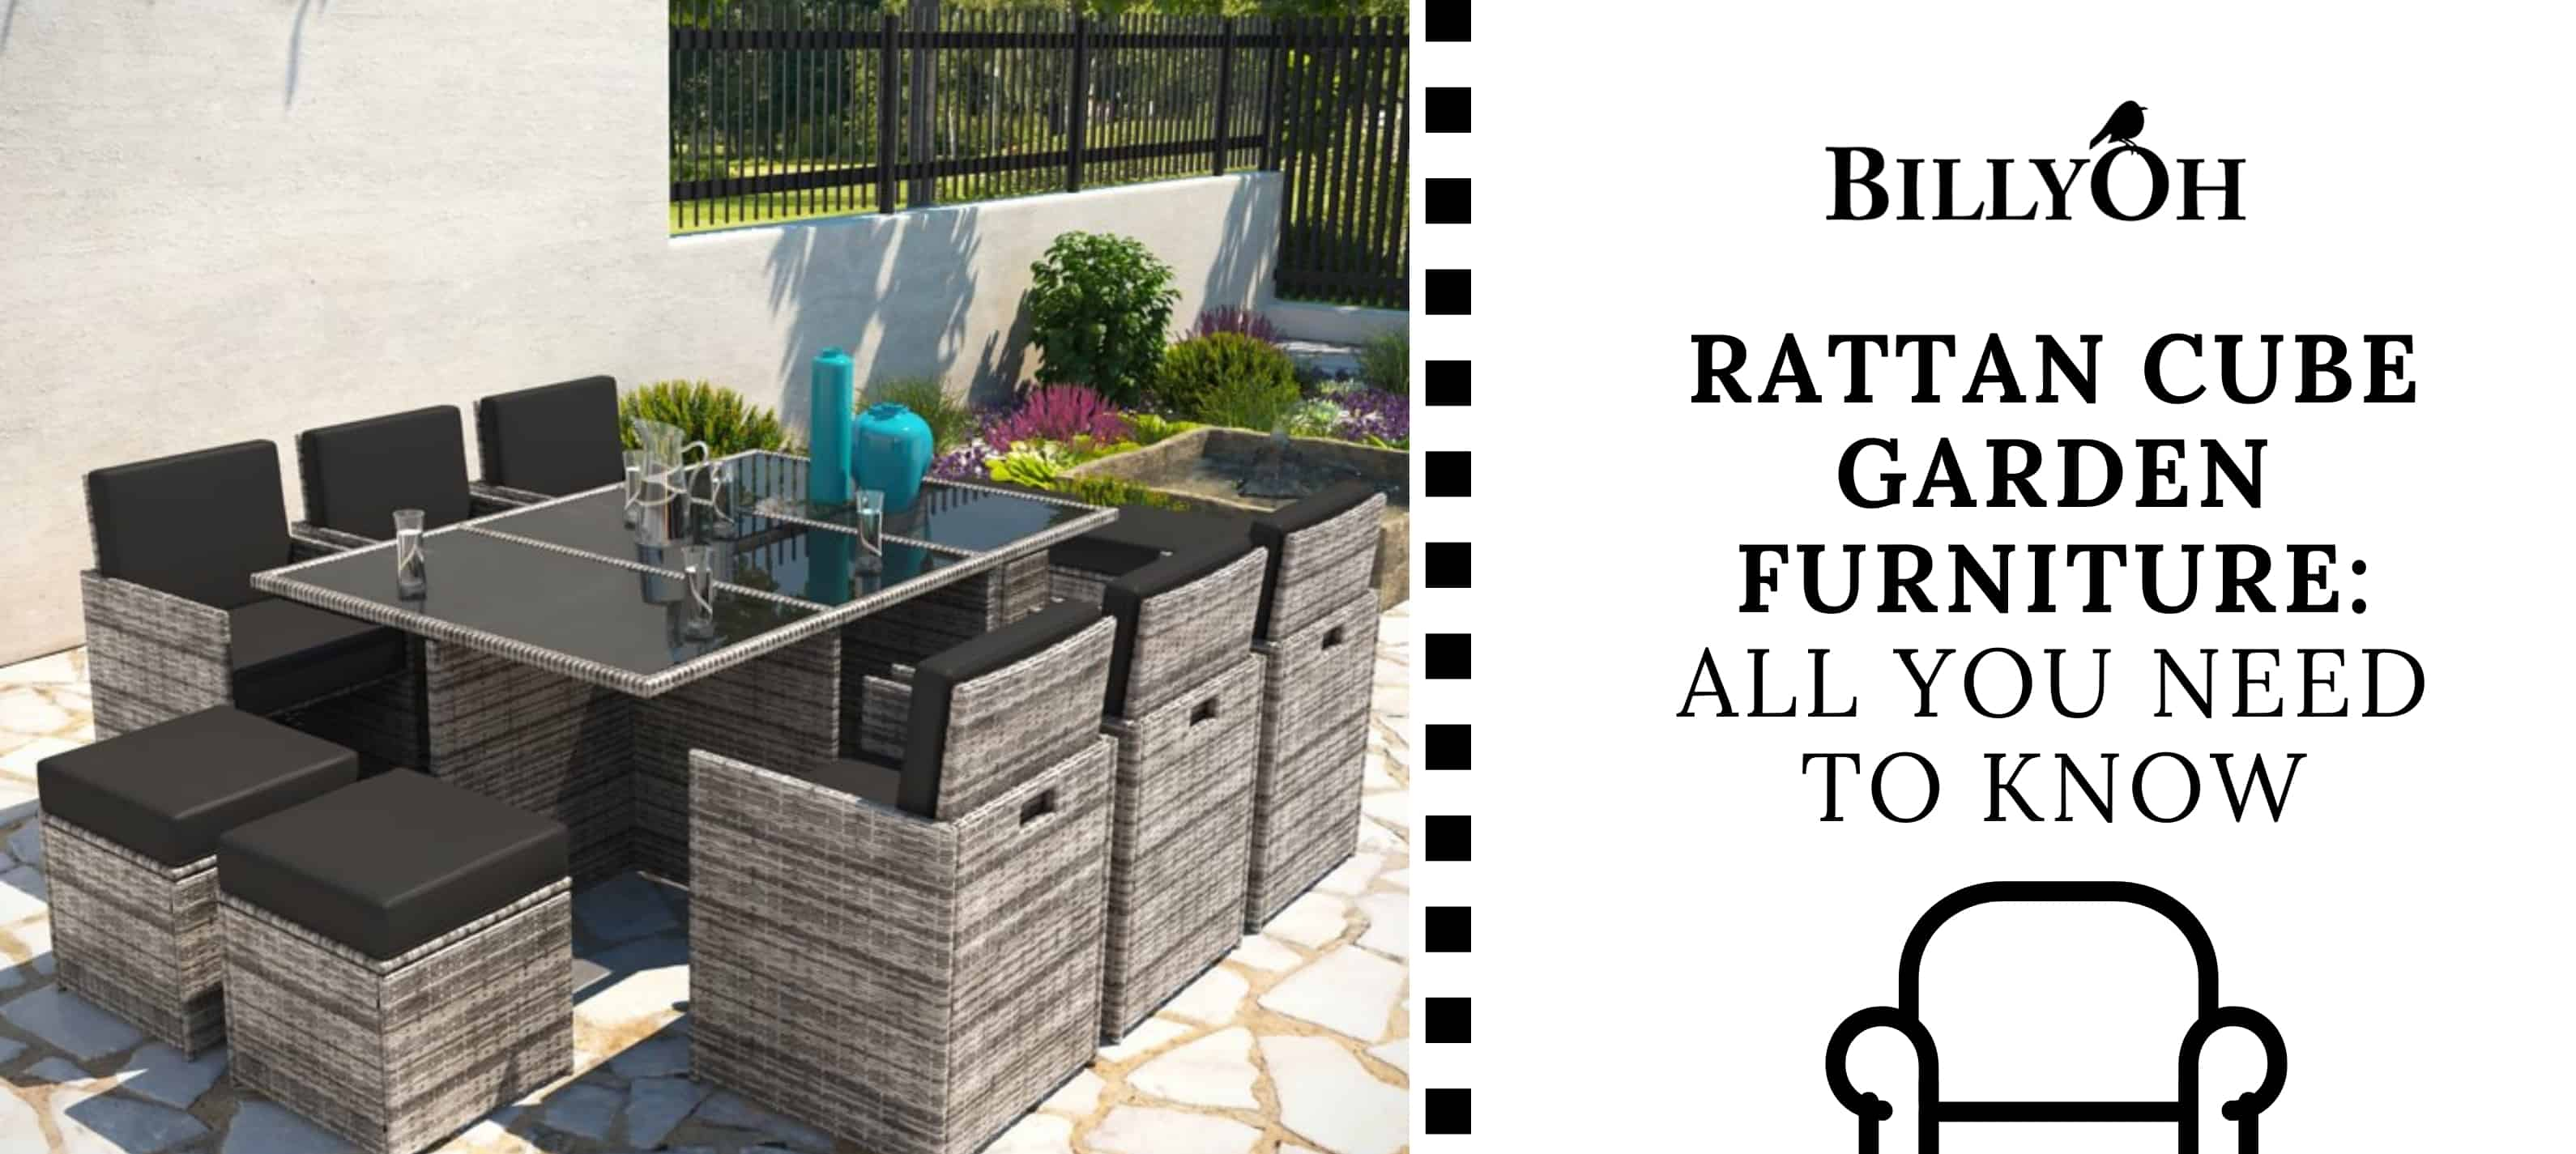 rattan cube garden furniture set on patio with BillyOh logo and cartoon black and white film reel banner